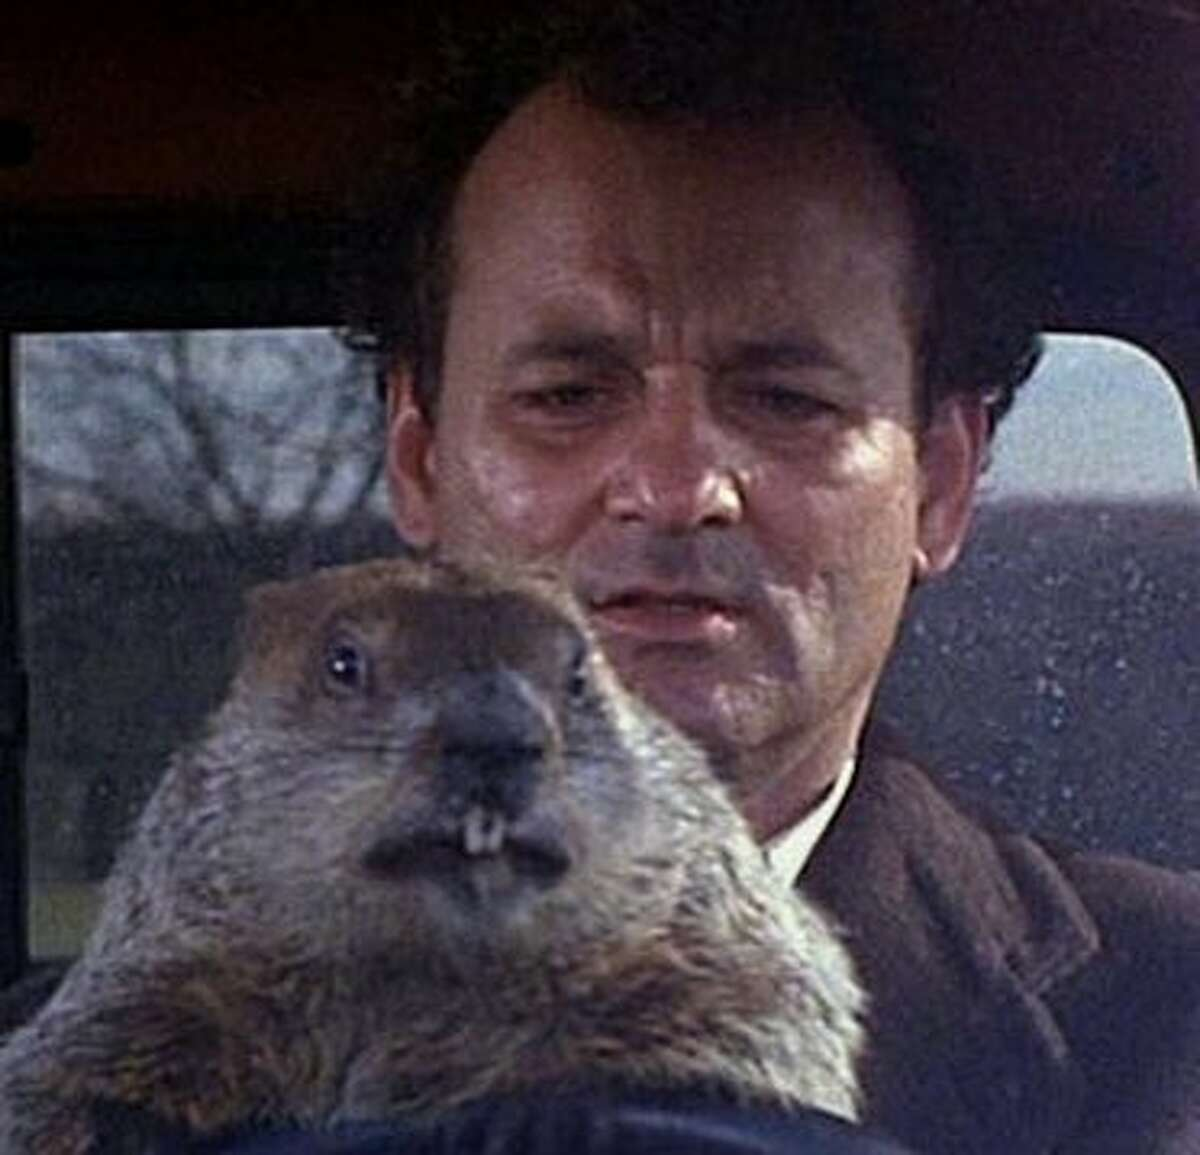 Groundhog Day (1993) Available on Netflix August 1 A weatherman finds himself inexplicably living the same day over and over again.